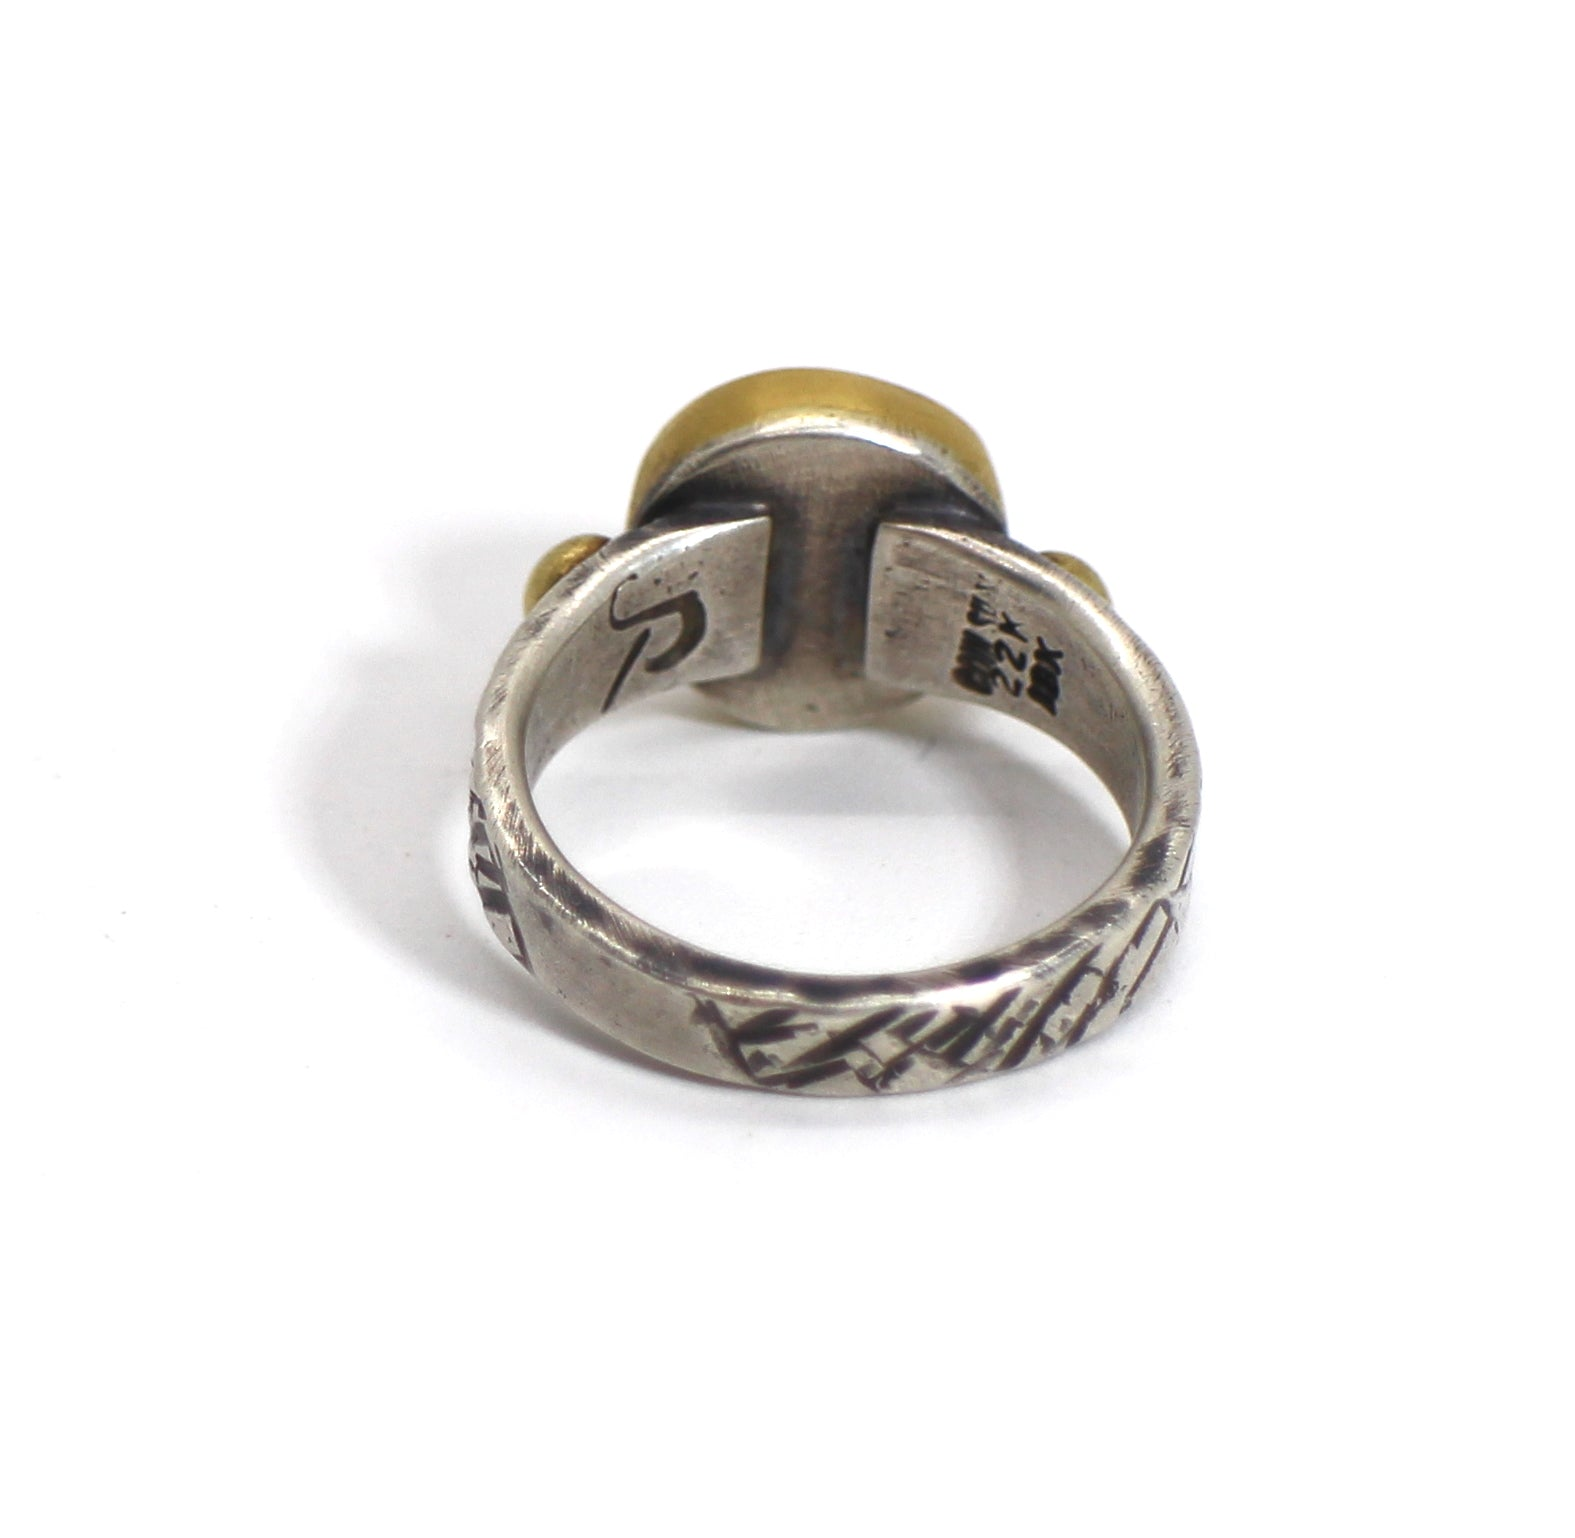 Jesse Robbins Cheyenne and Gold Ring